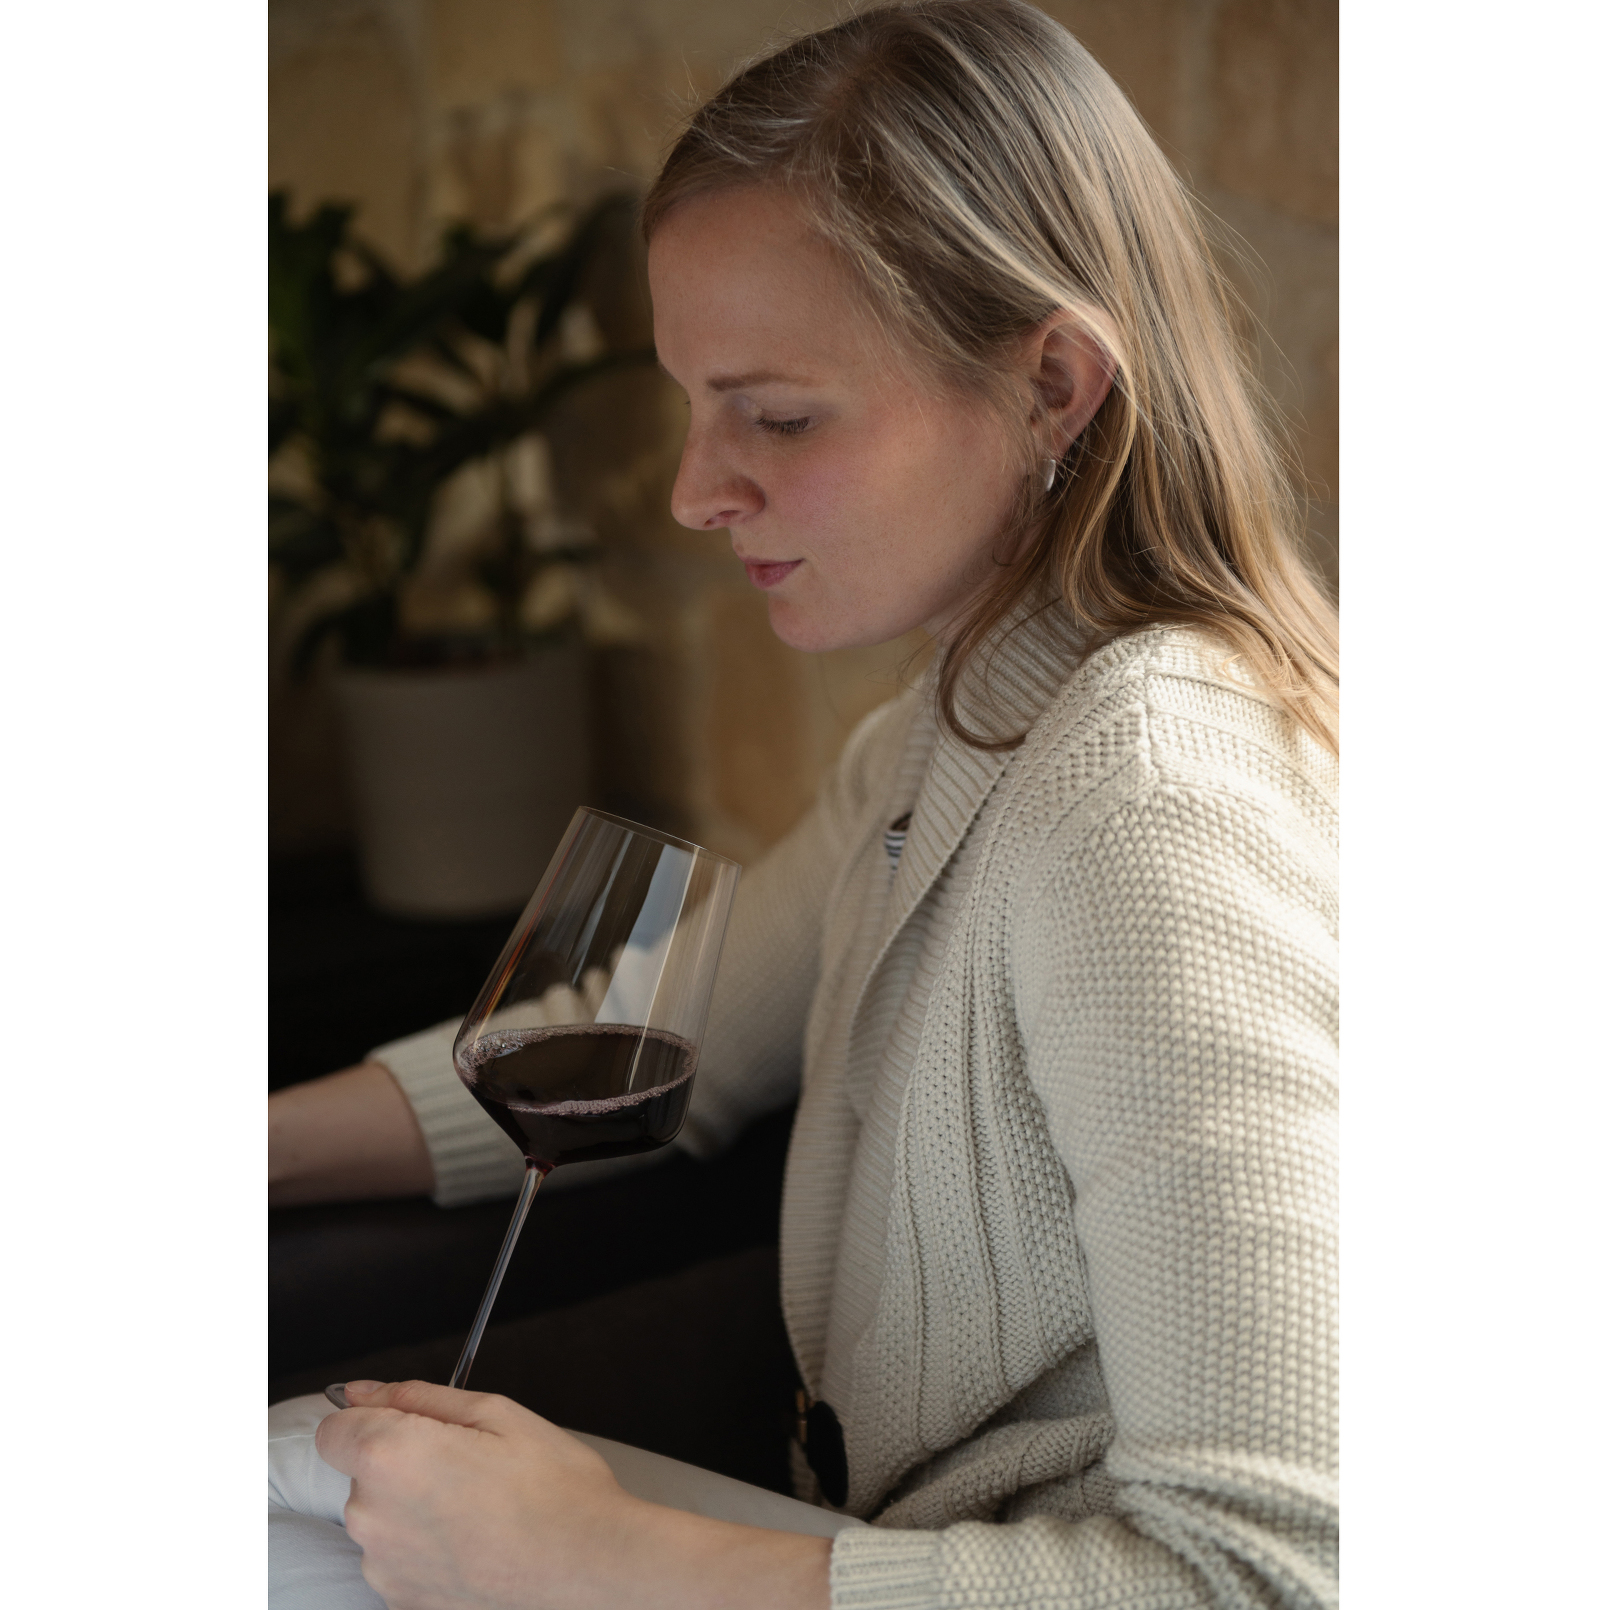 Christina Thiblet Baldwin Commercial Wine Photographer